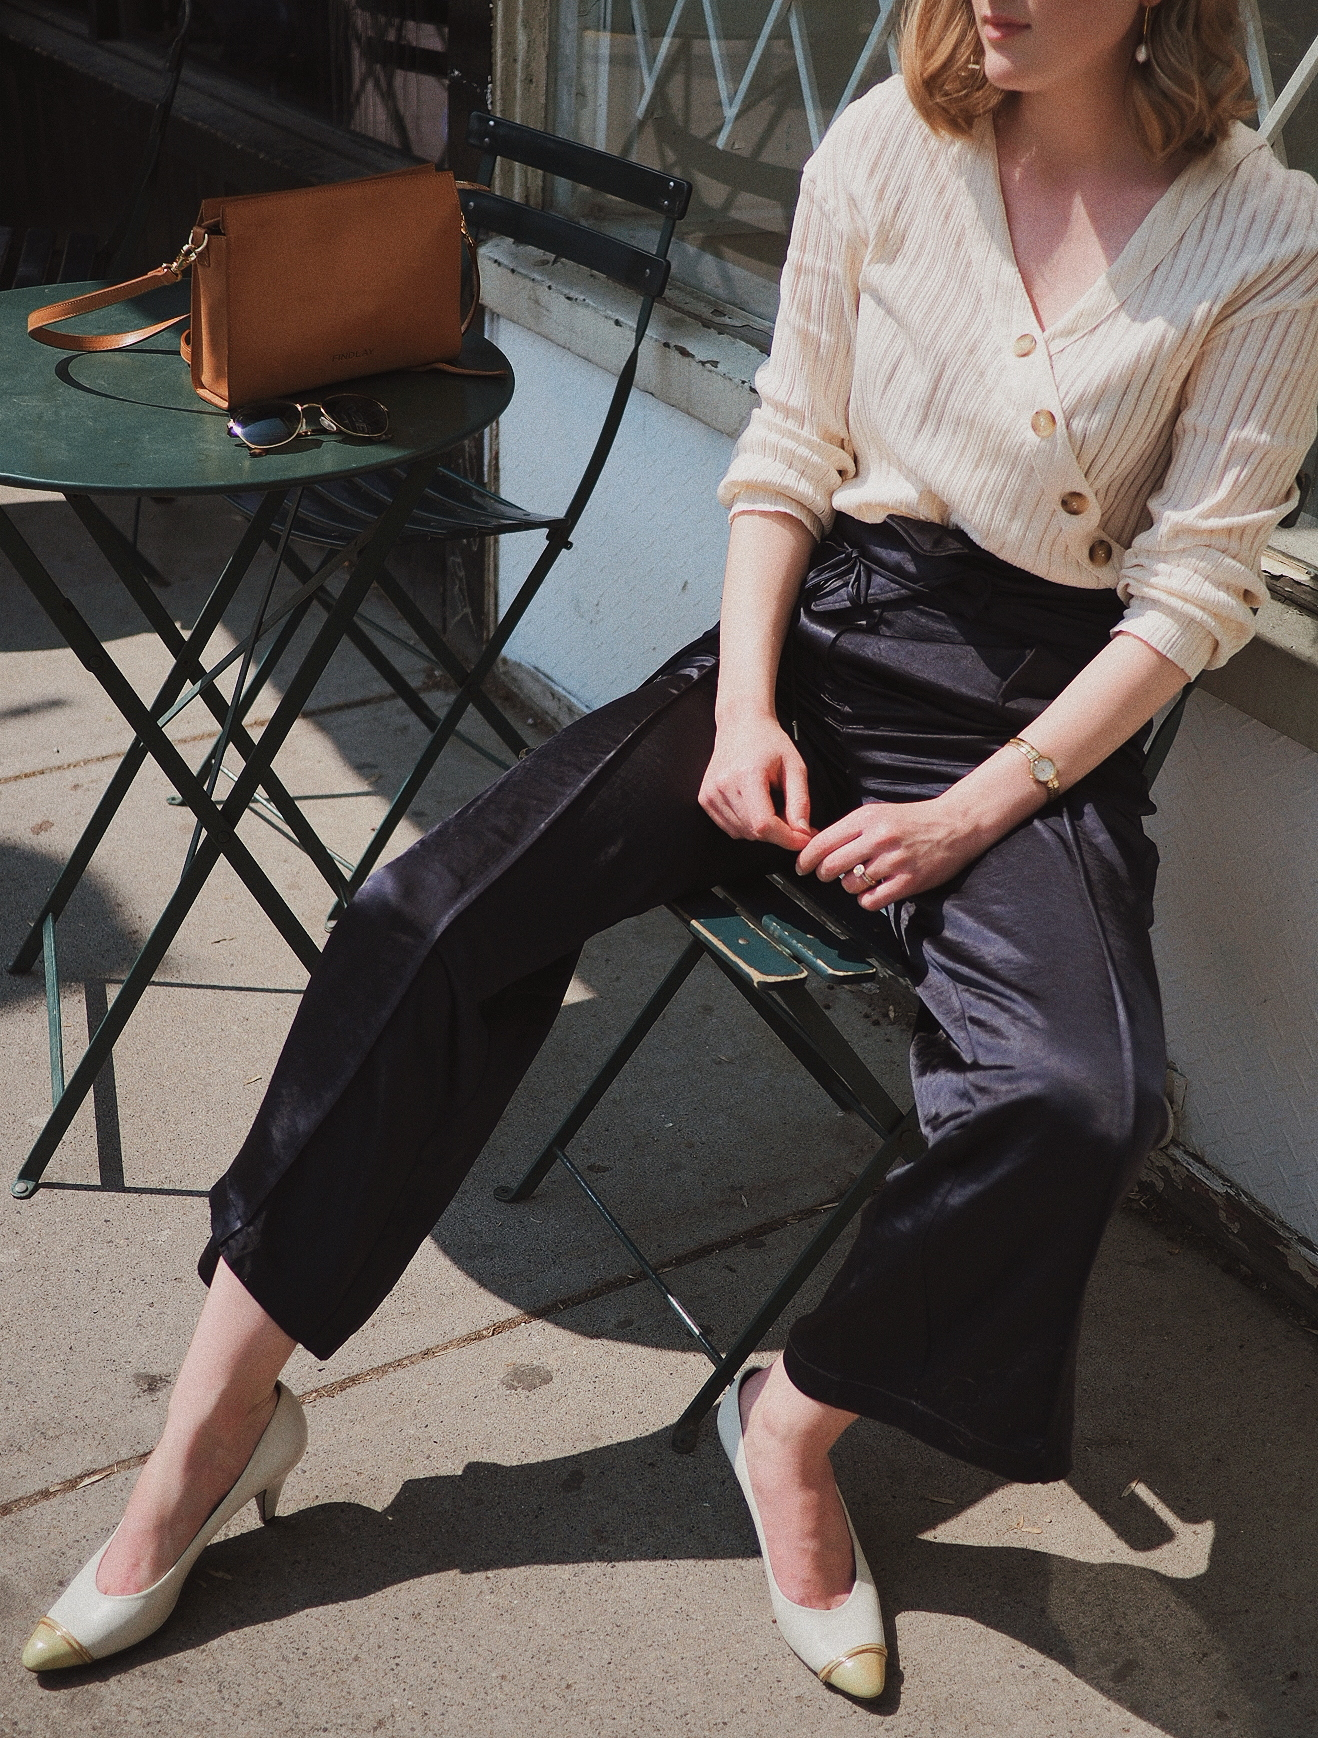 The Asymmetric Pants by SKYE. Shirt: Balzac Paris. Shoes: vintage. Bag: Findlay Co.